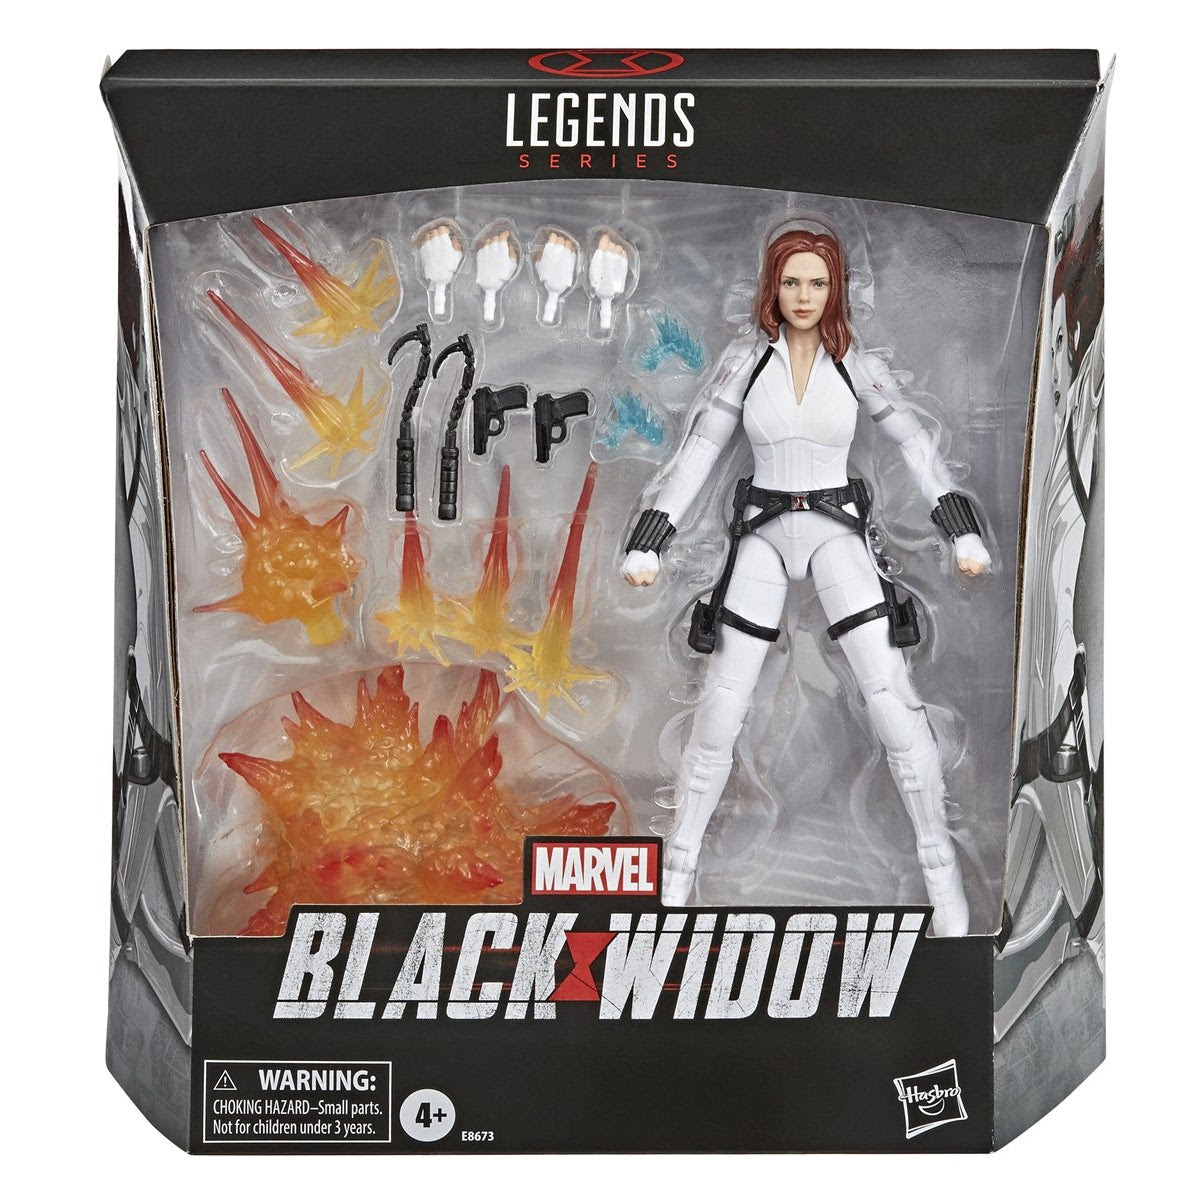 Image of Marvel Legends Deluxe Black Widow Movie Figure by Hasbro